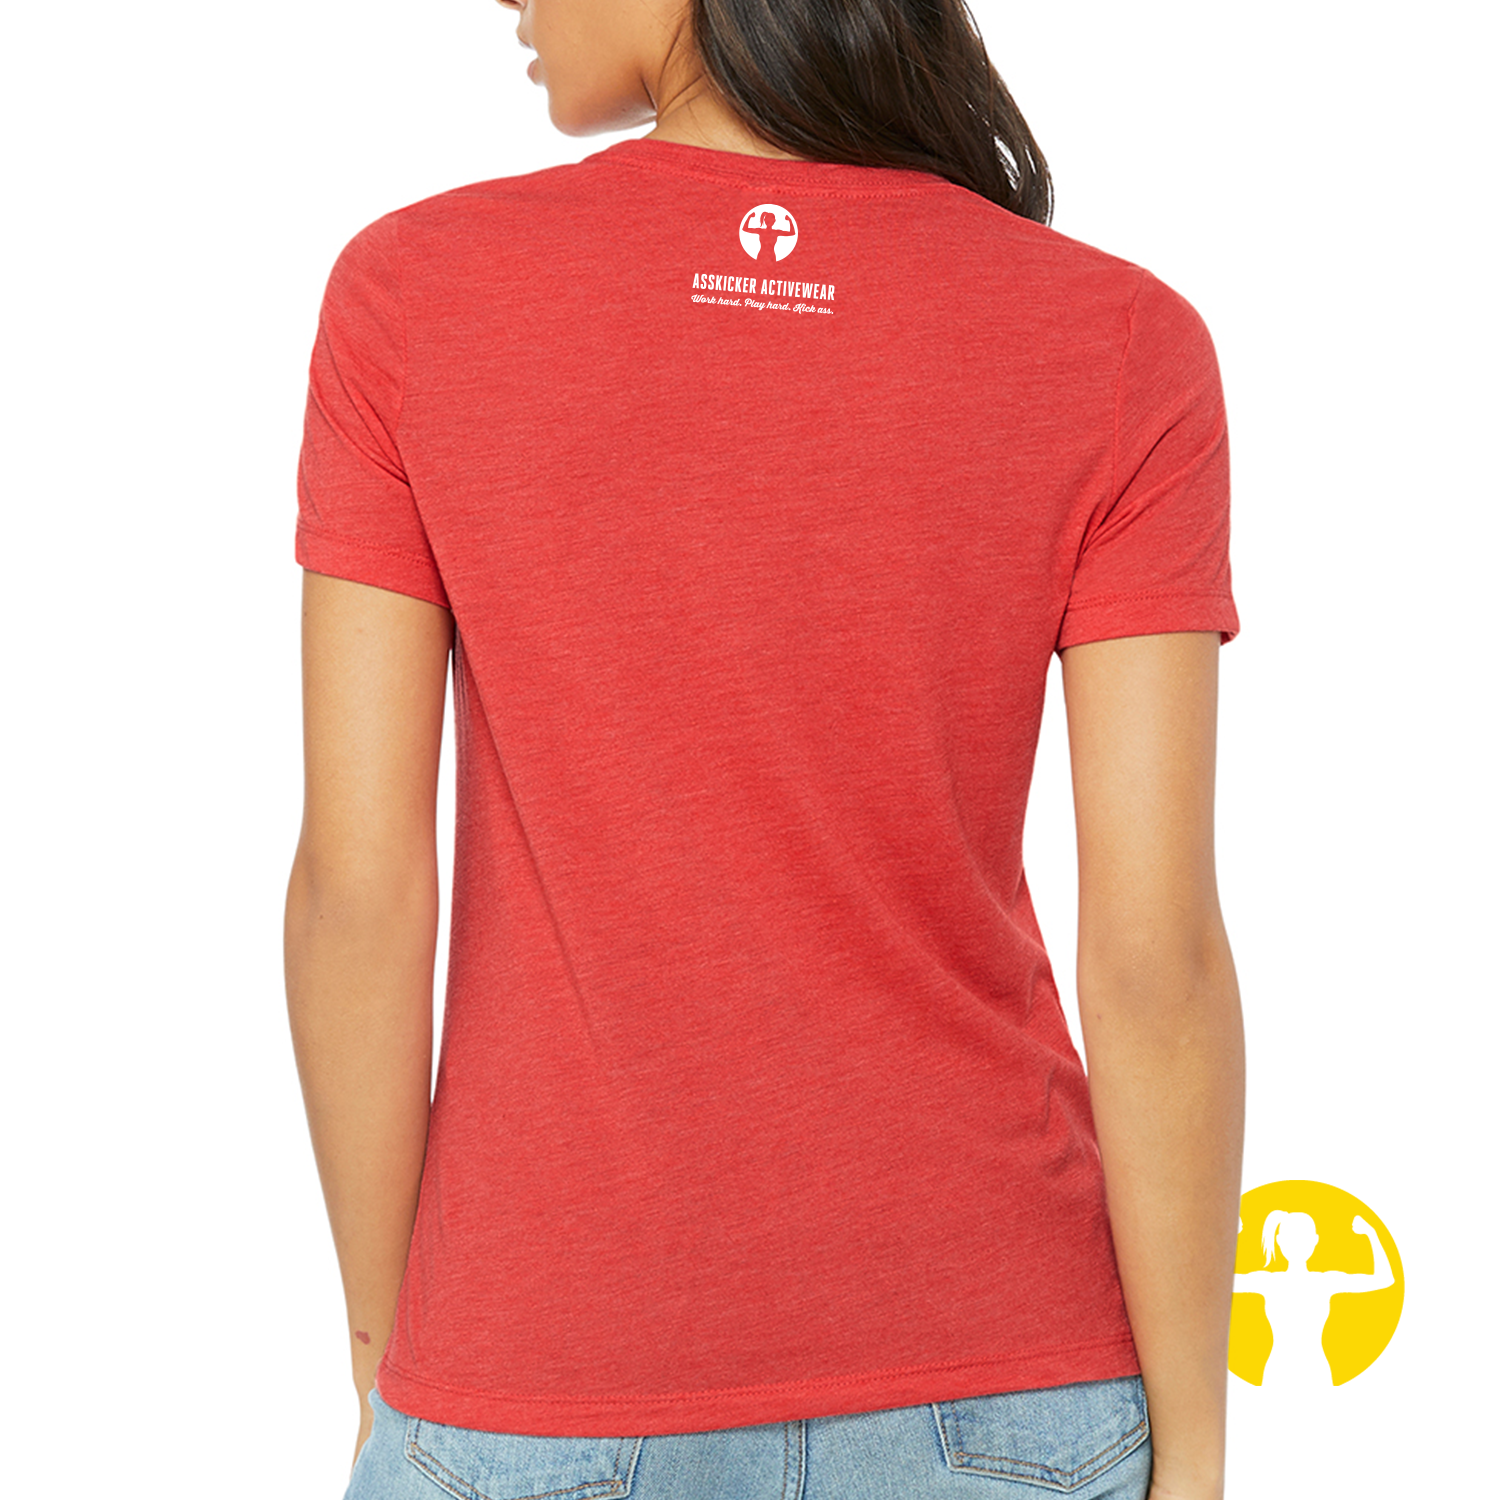 True North Strong & Free - Canada Day Tee for Women